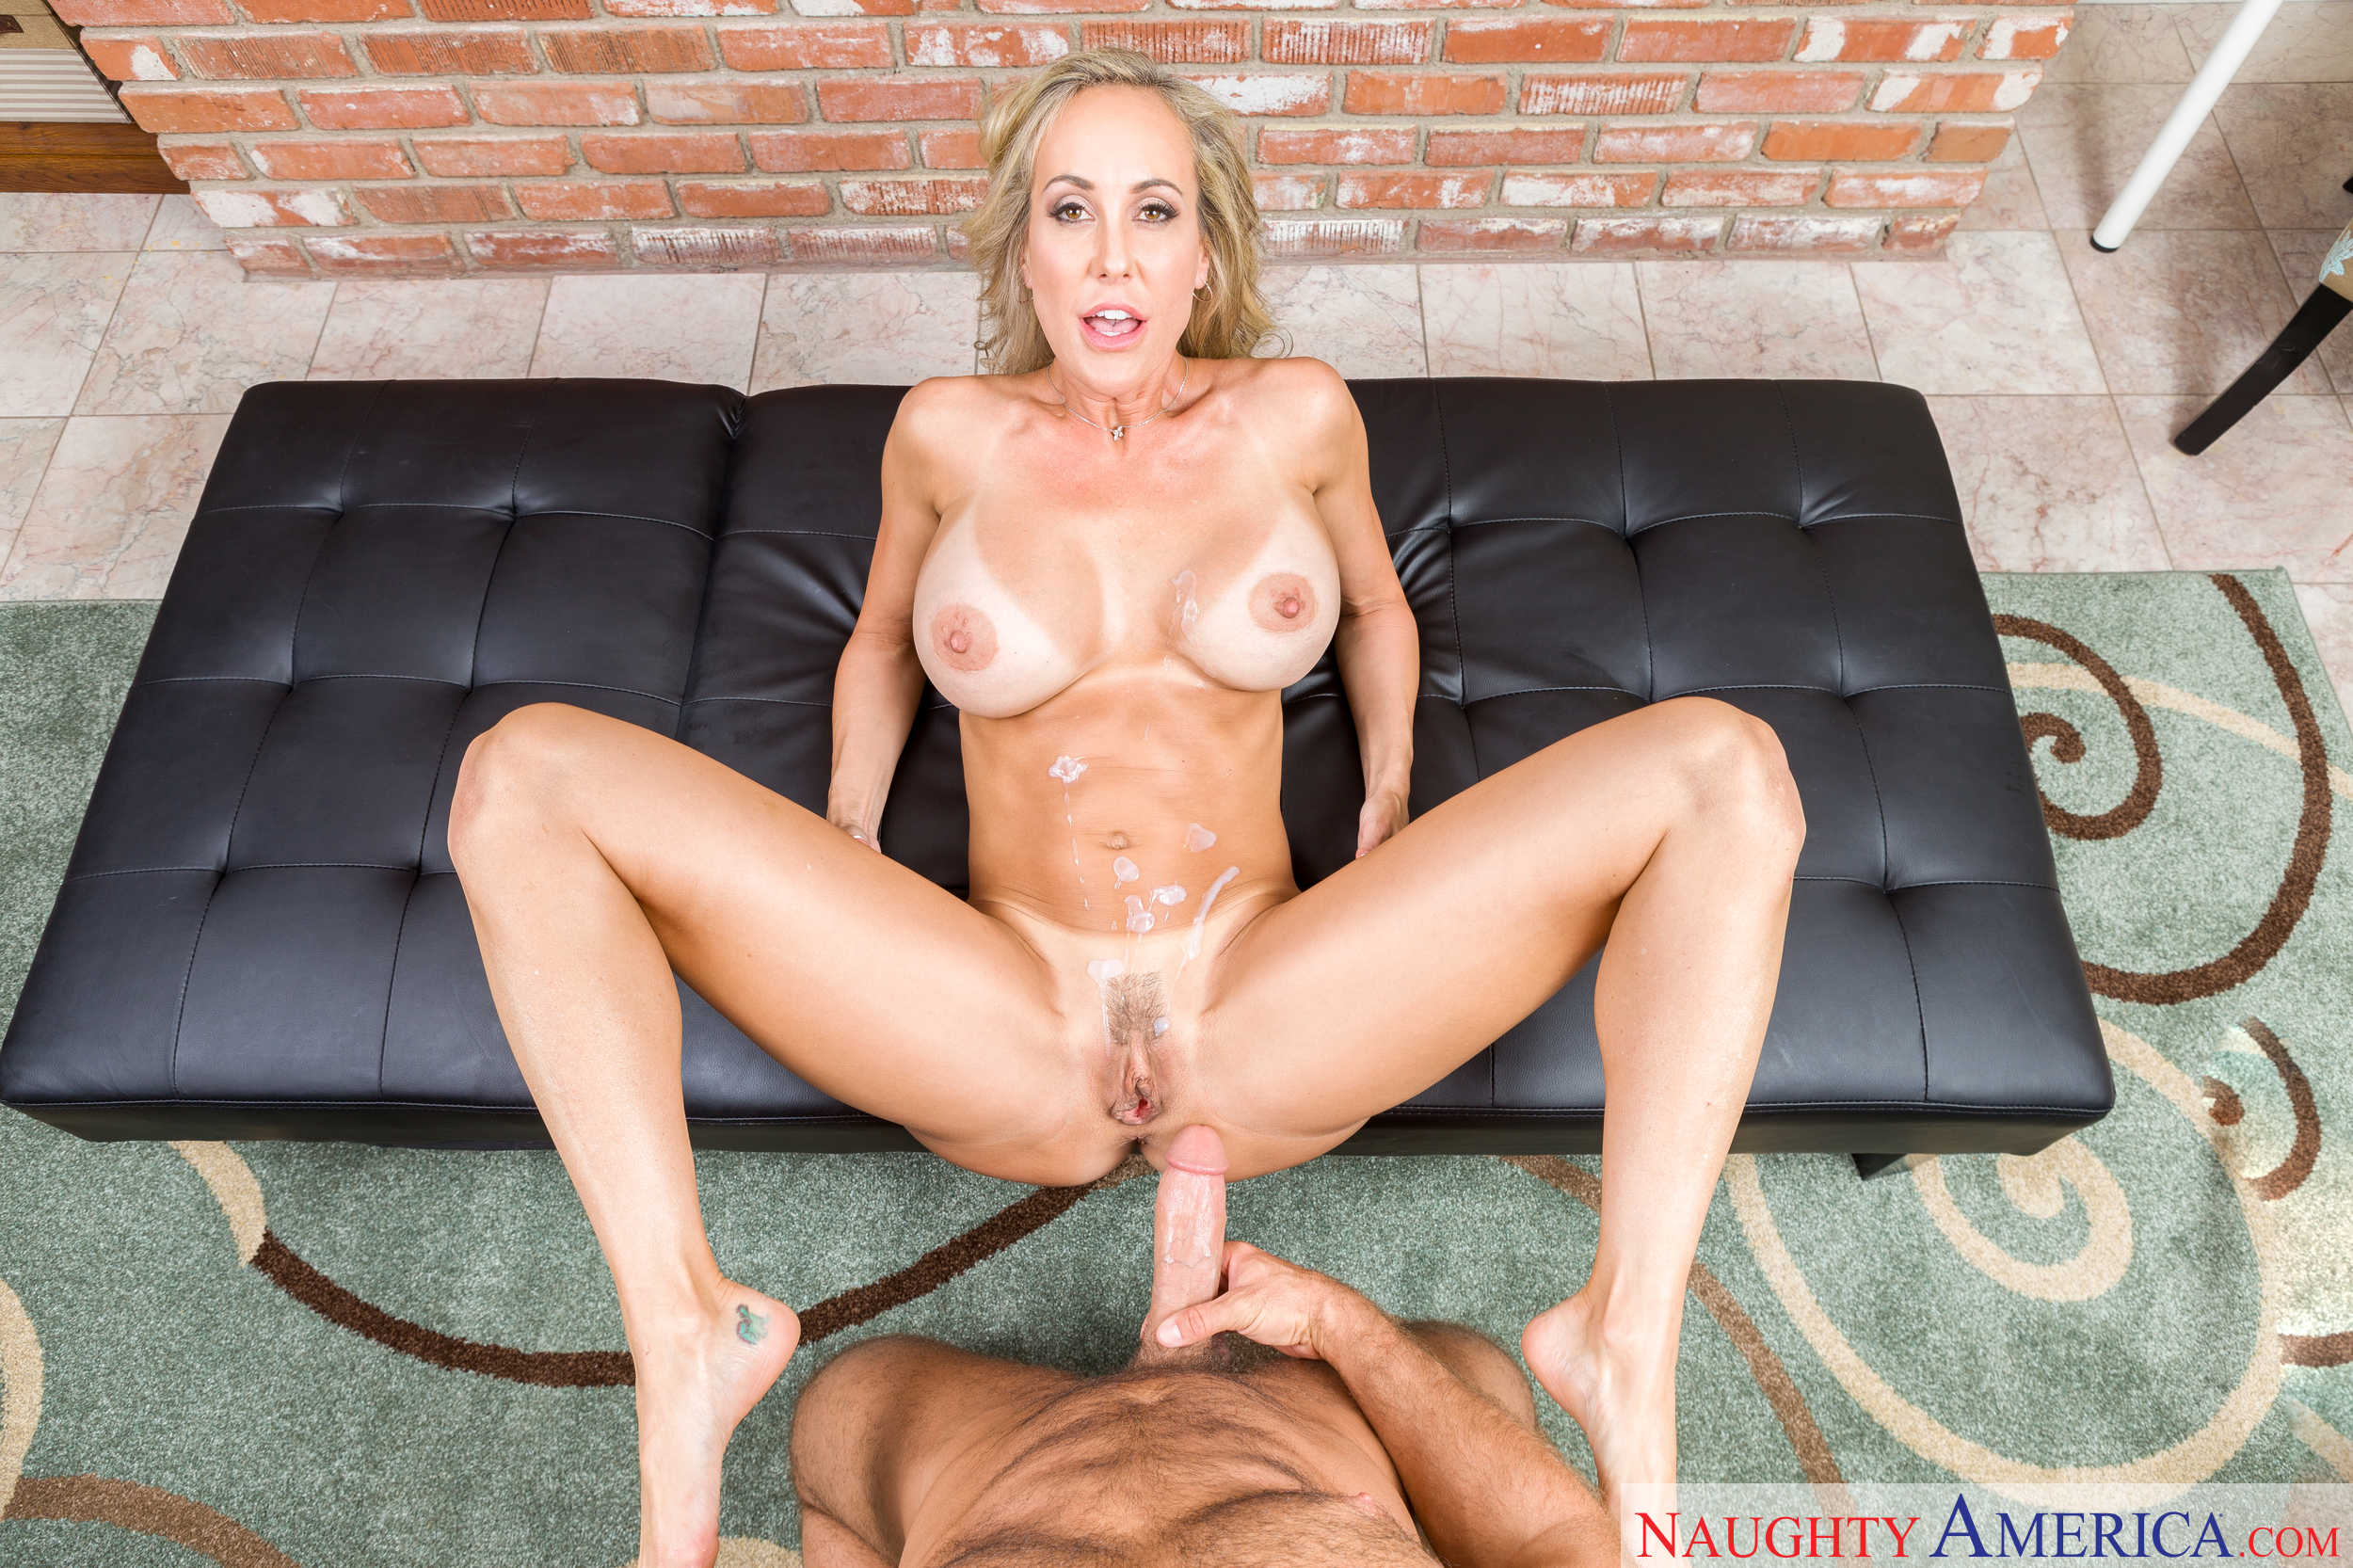 Nikki benz and abella danger stepmom videos